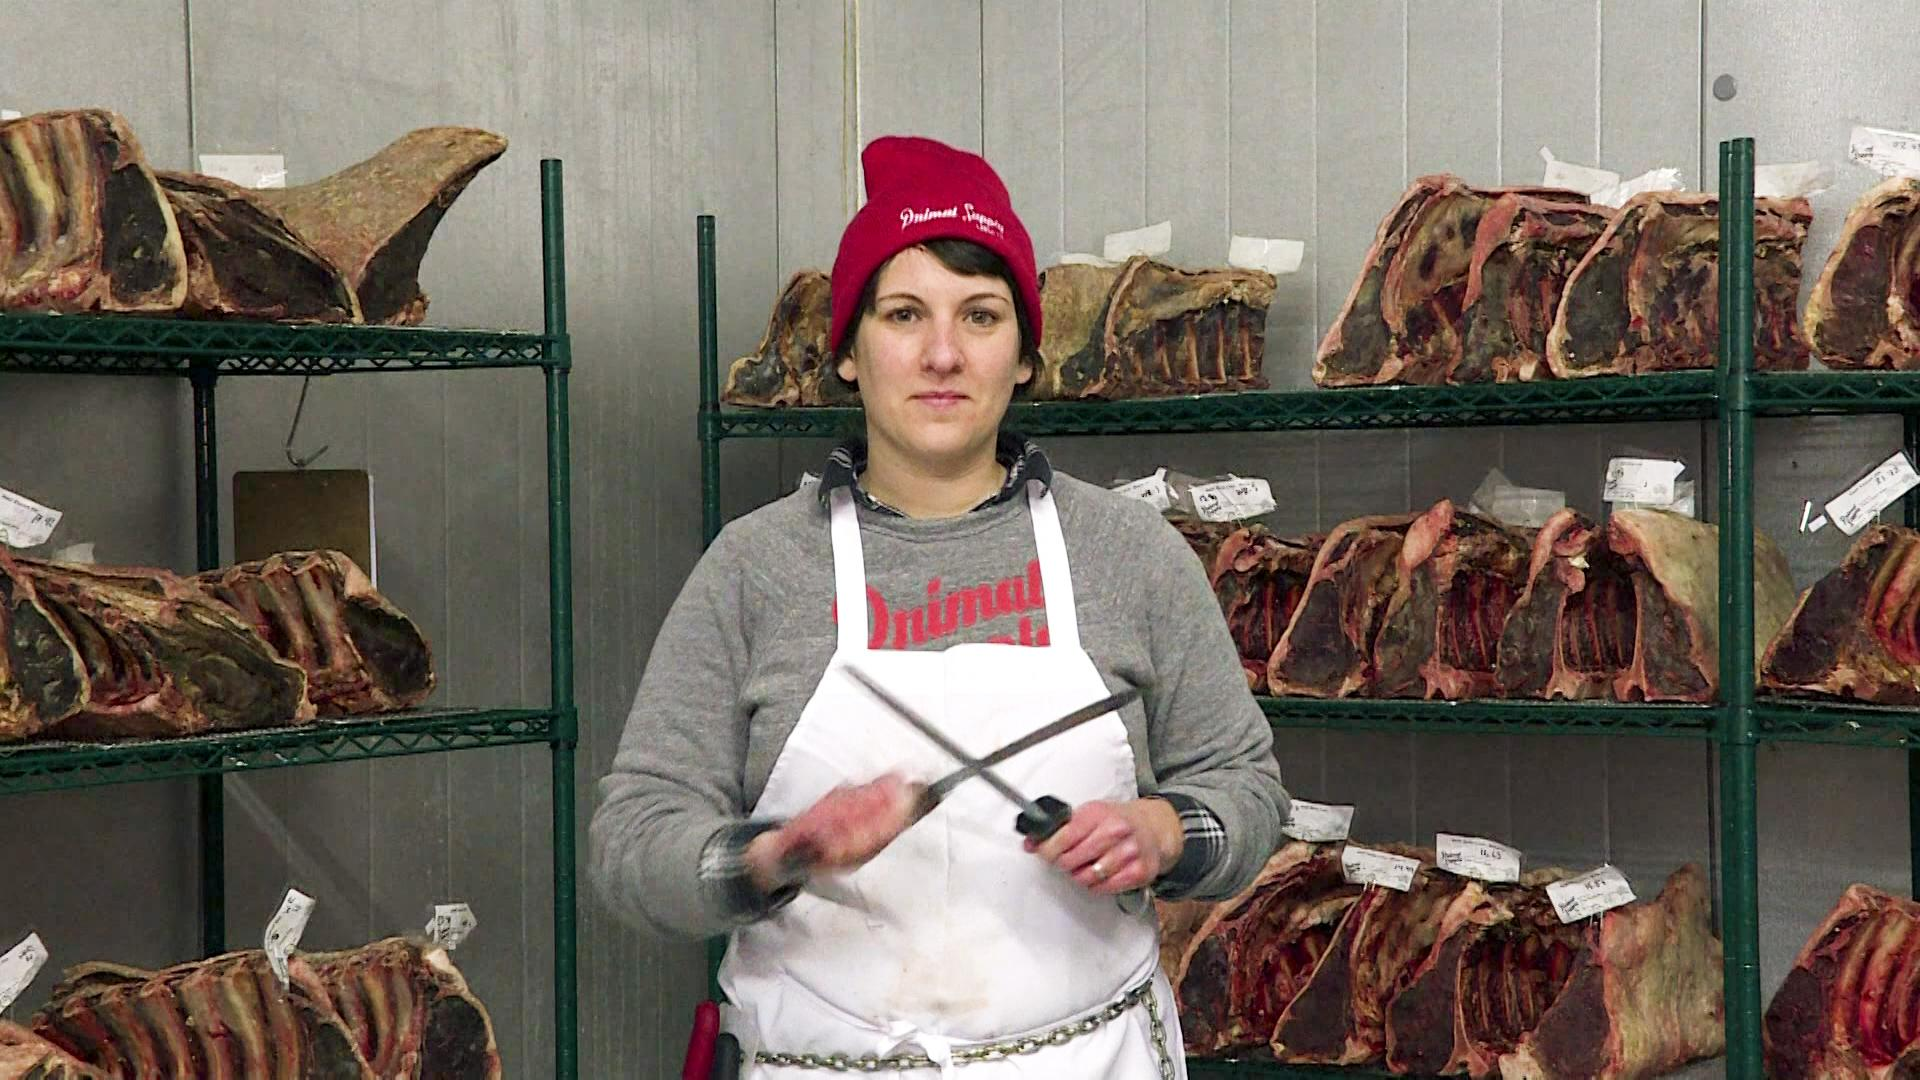 These 6 Women Are Breaking Barriers In The Meat Industry